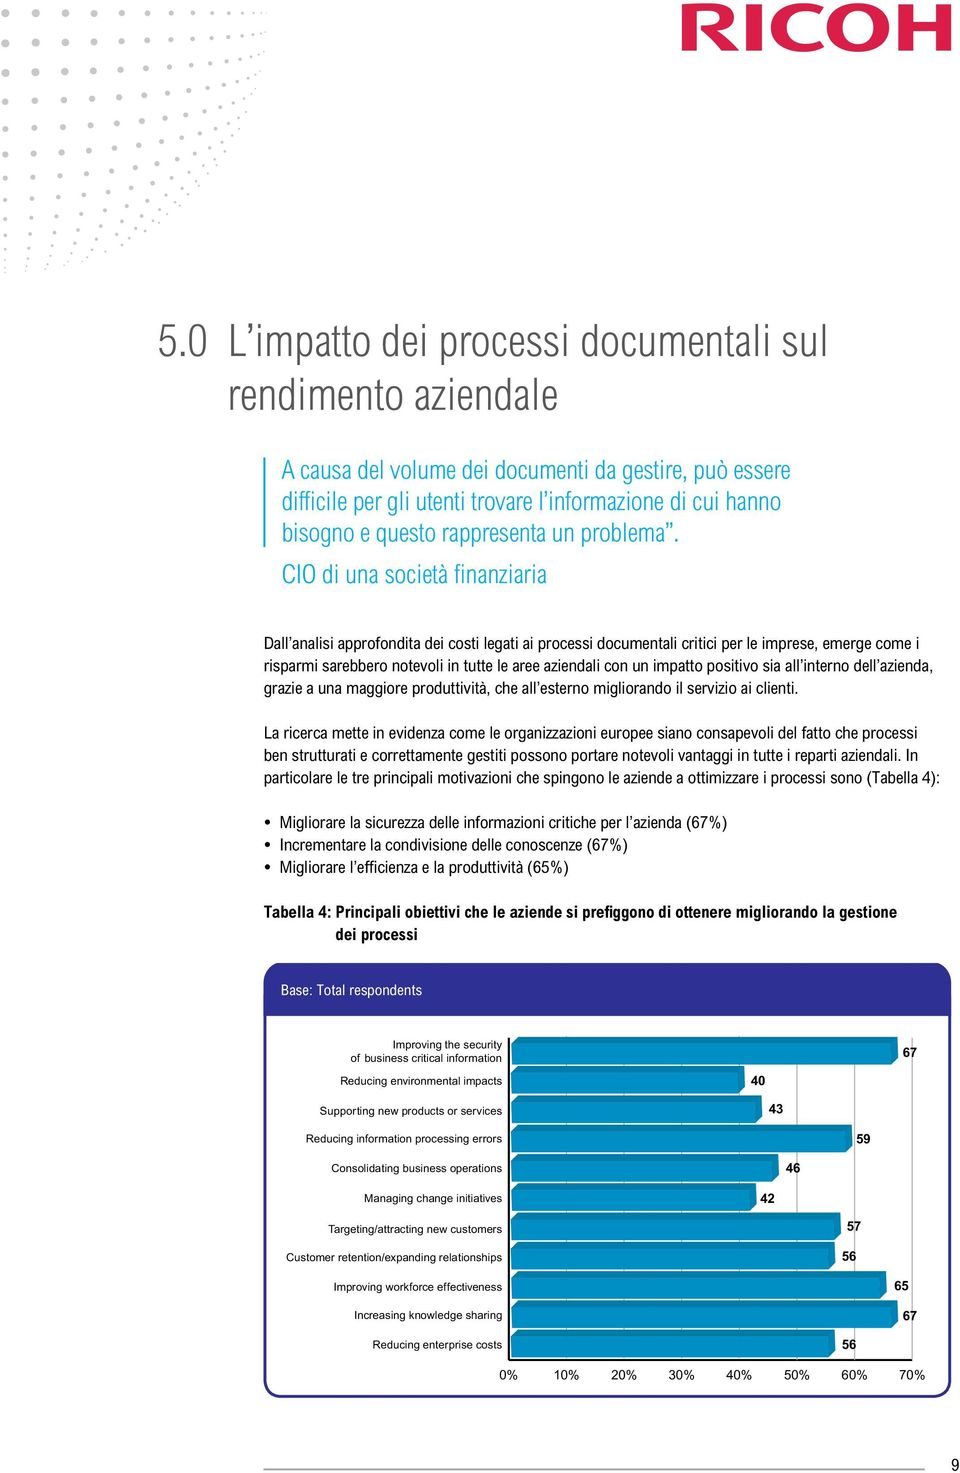 Reducing environmental impacts CIO di una società finanziaria Supporting new products or services Reducing information processing errors Dall analisi Consolidating approfondita business dei